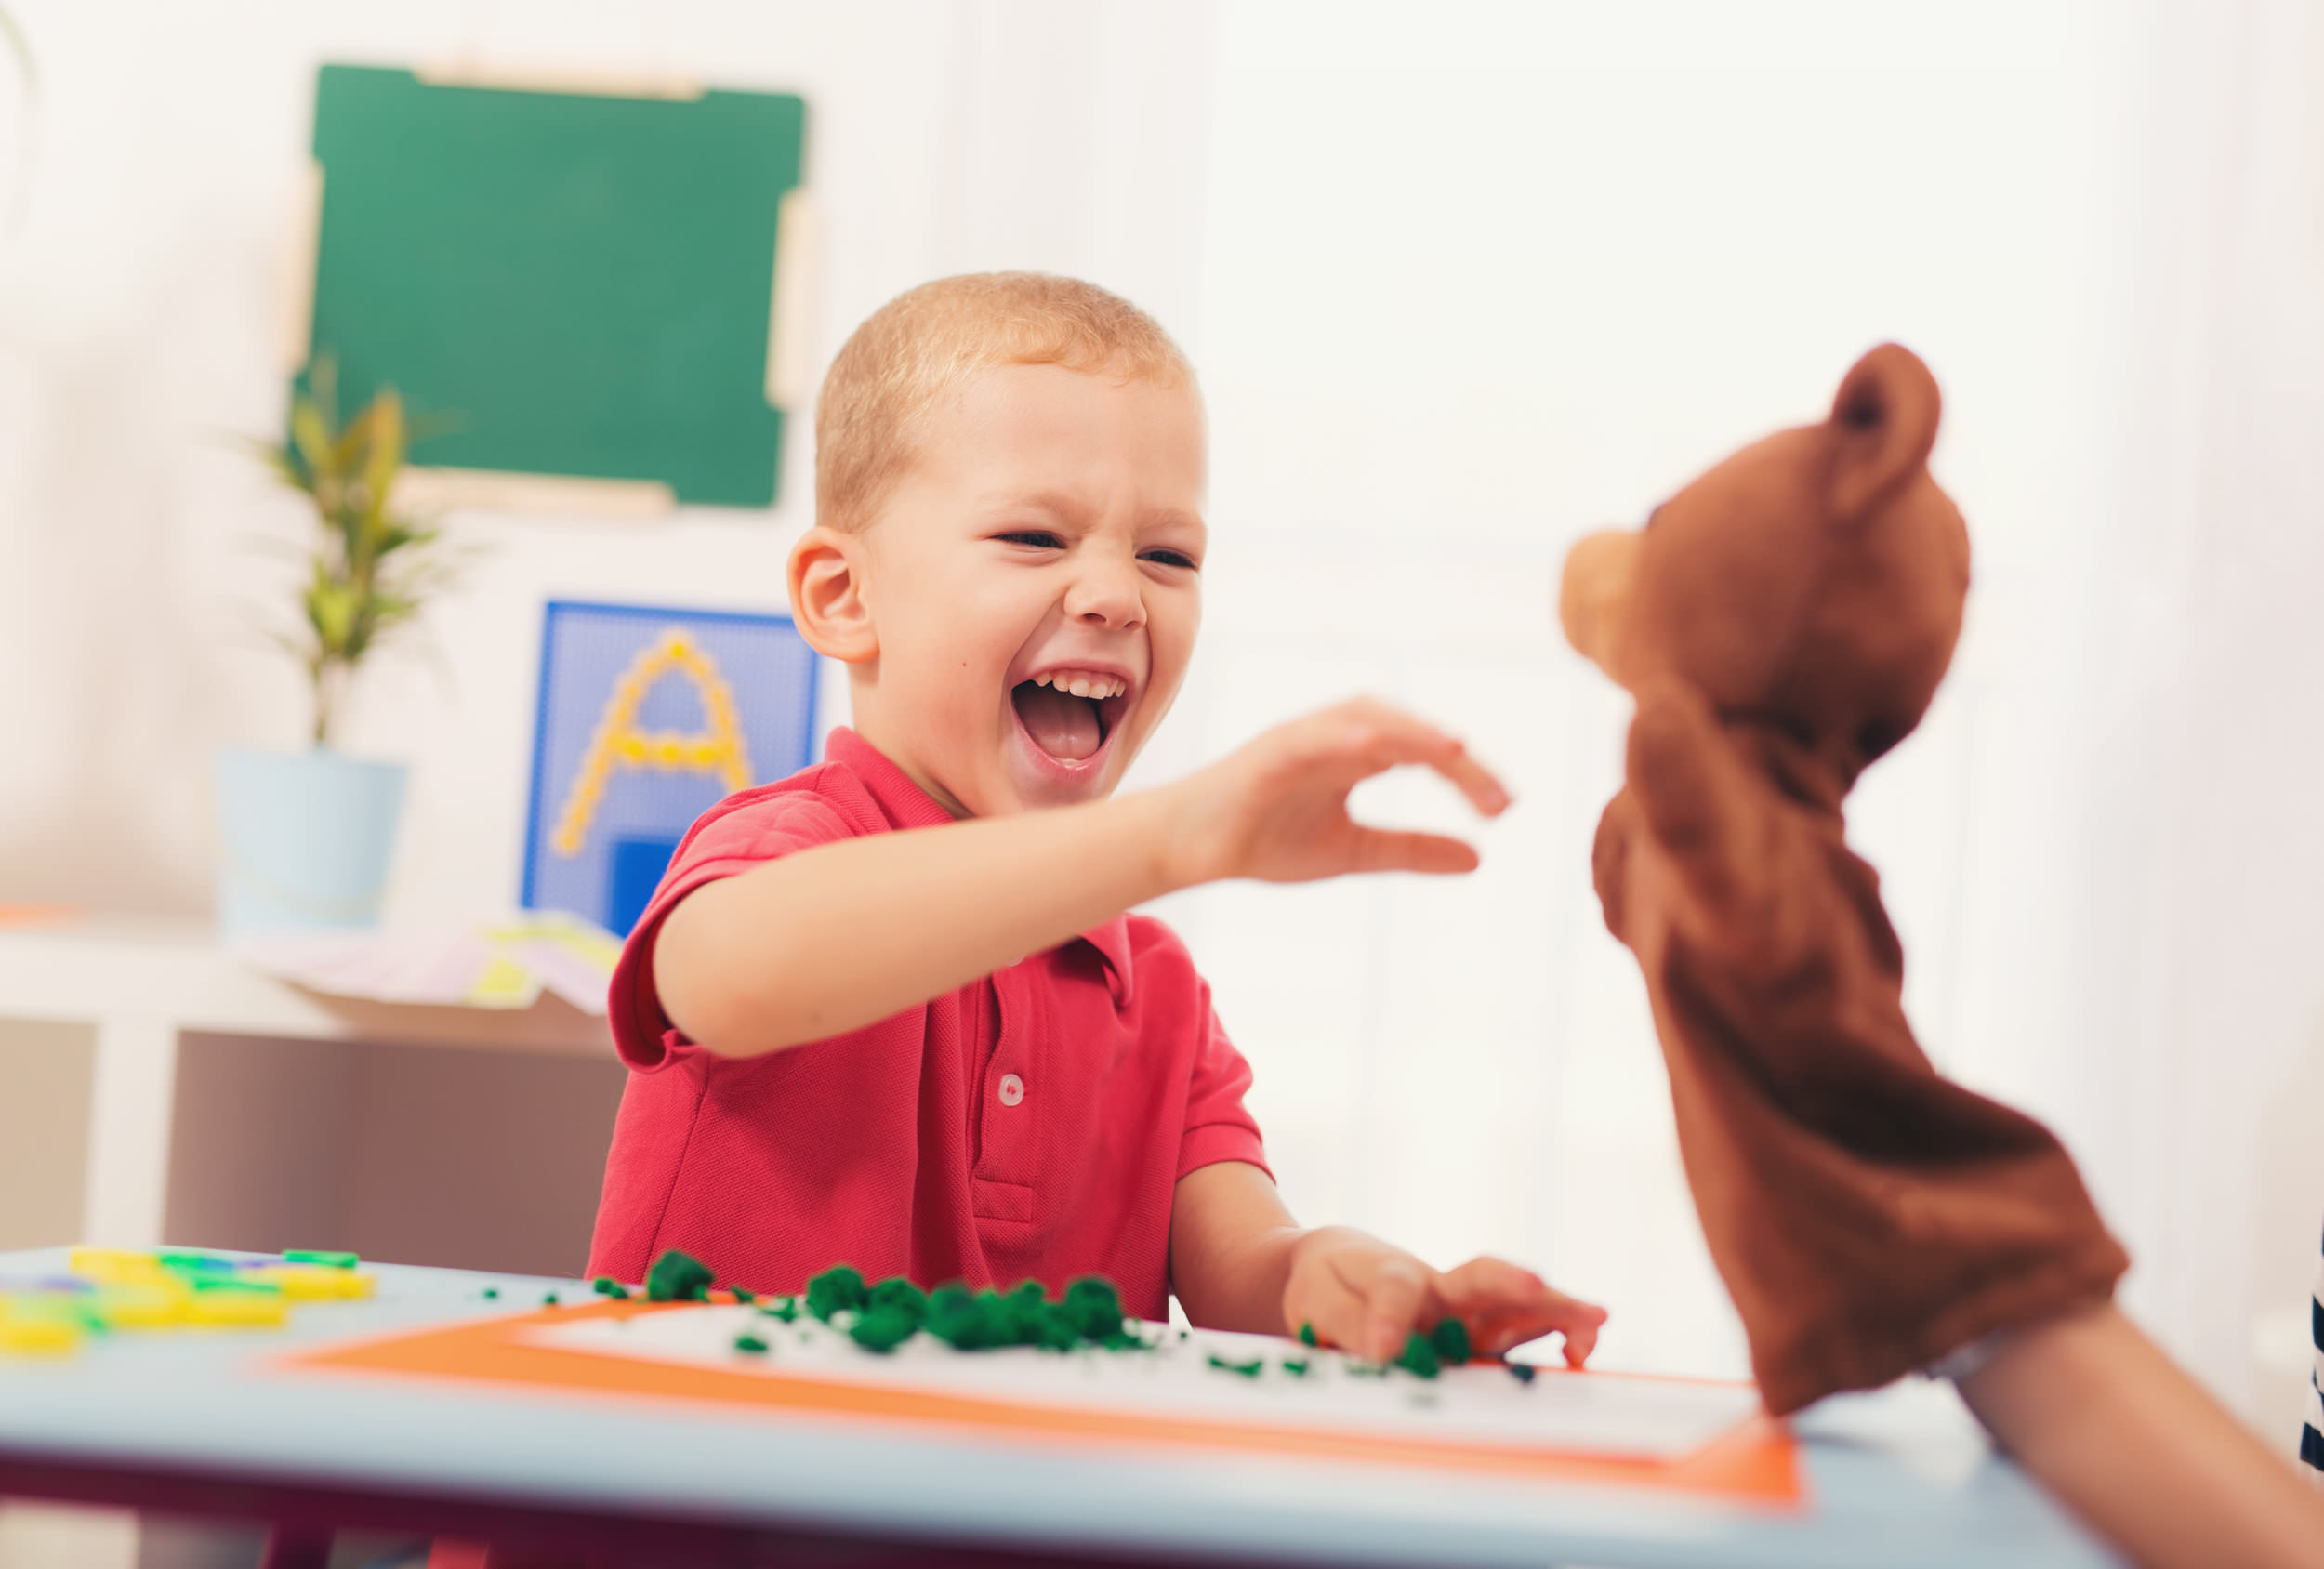 boy laughing while interacting with toy bear.jpg